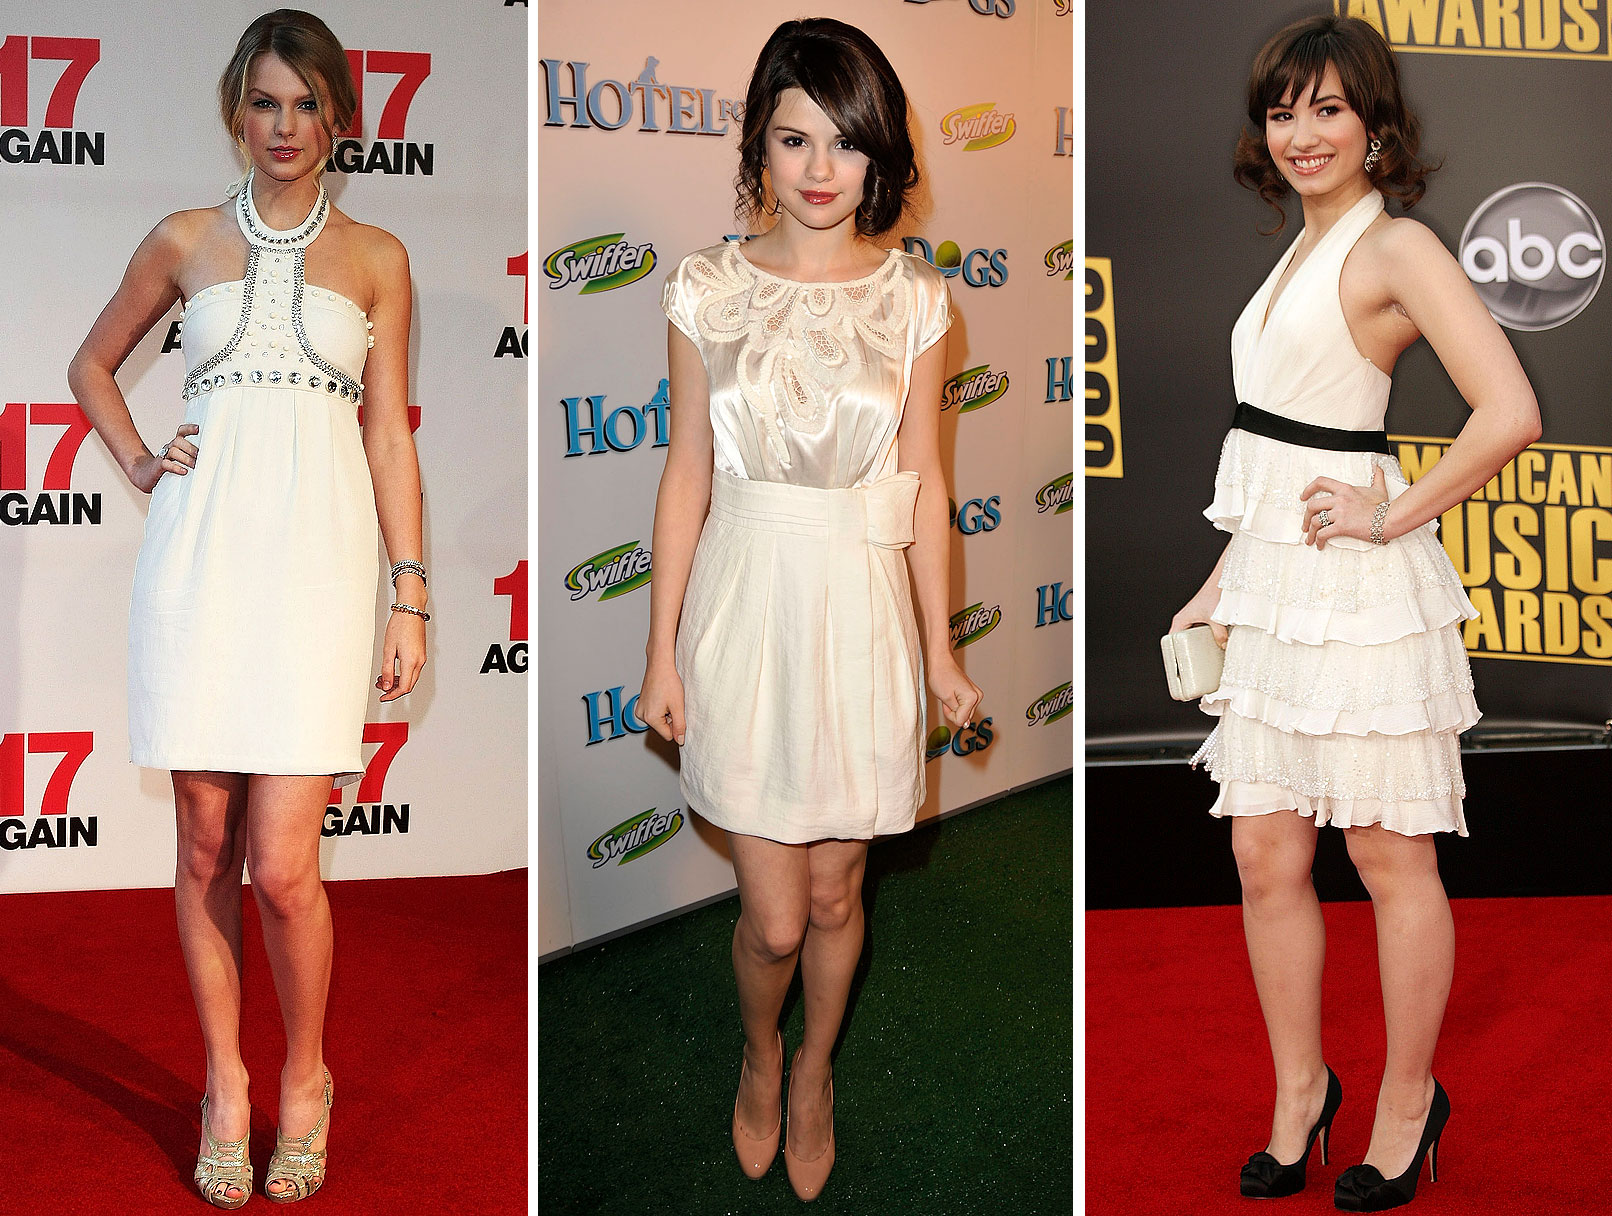 Selena Gomez and Taylor Swift Twitter Their Love to Demi